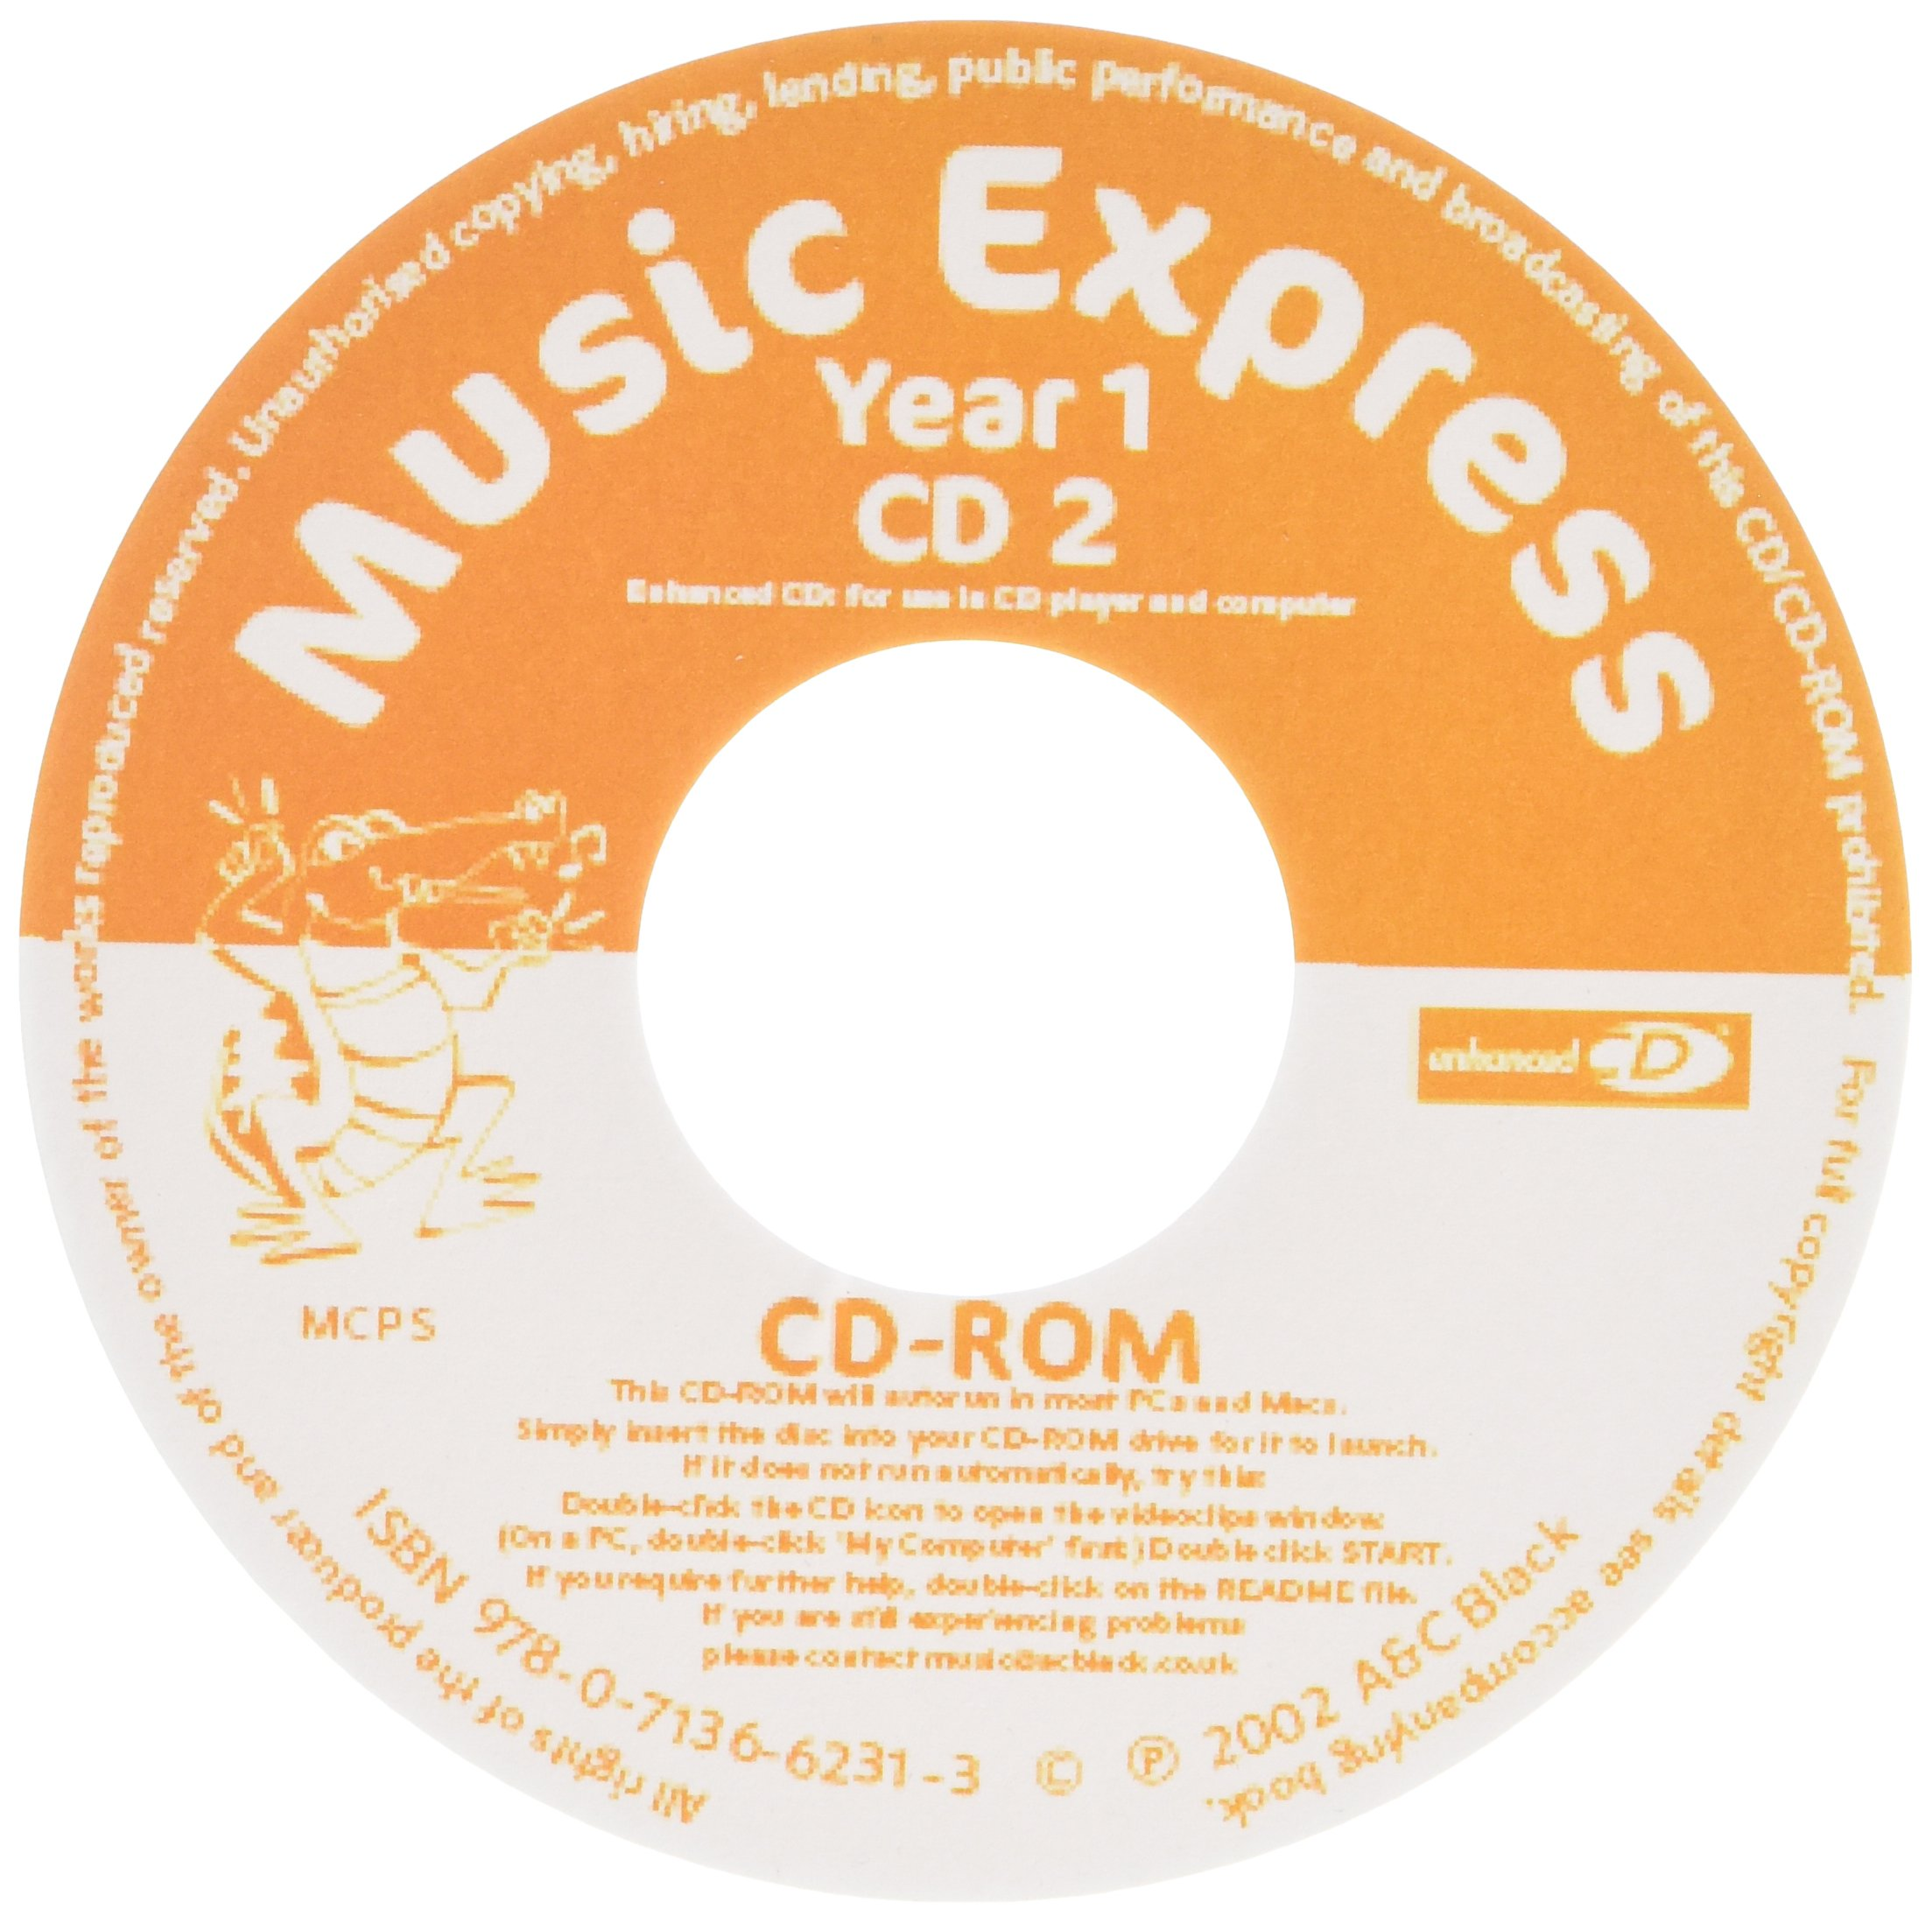 Music Express - Music Express Yr 1 Replacement CD2: Amazon